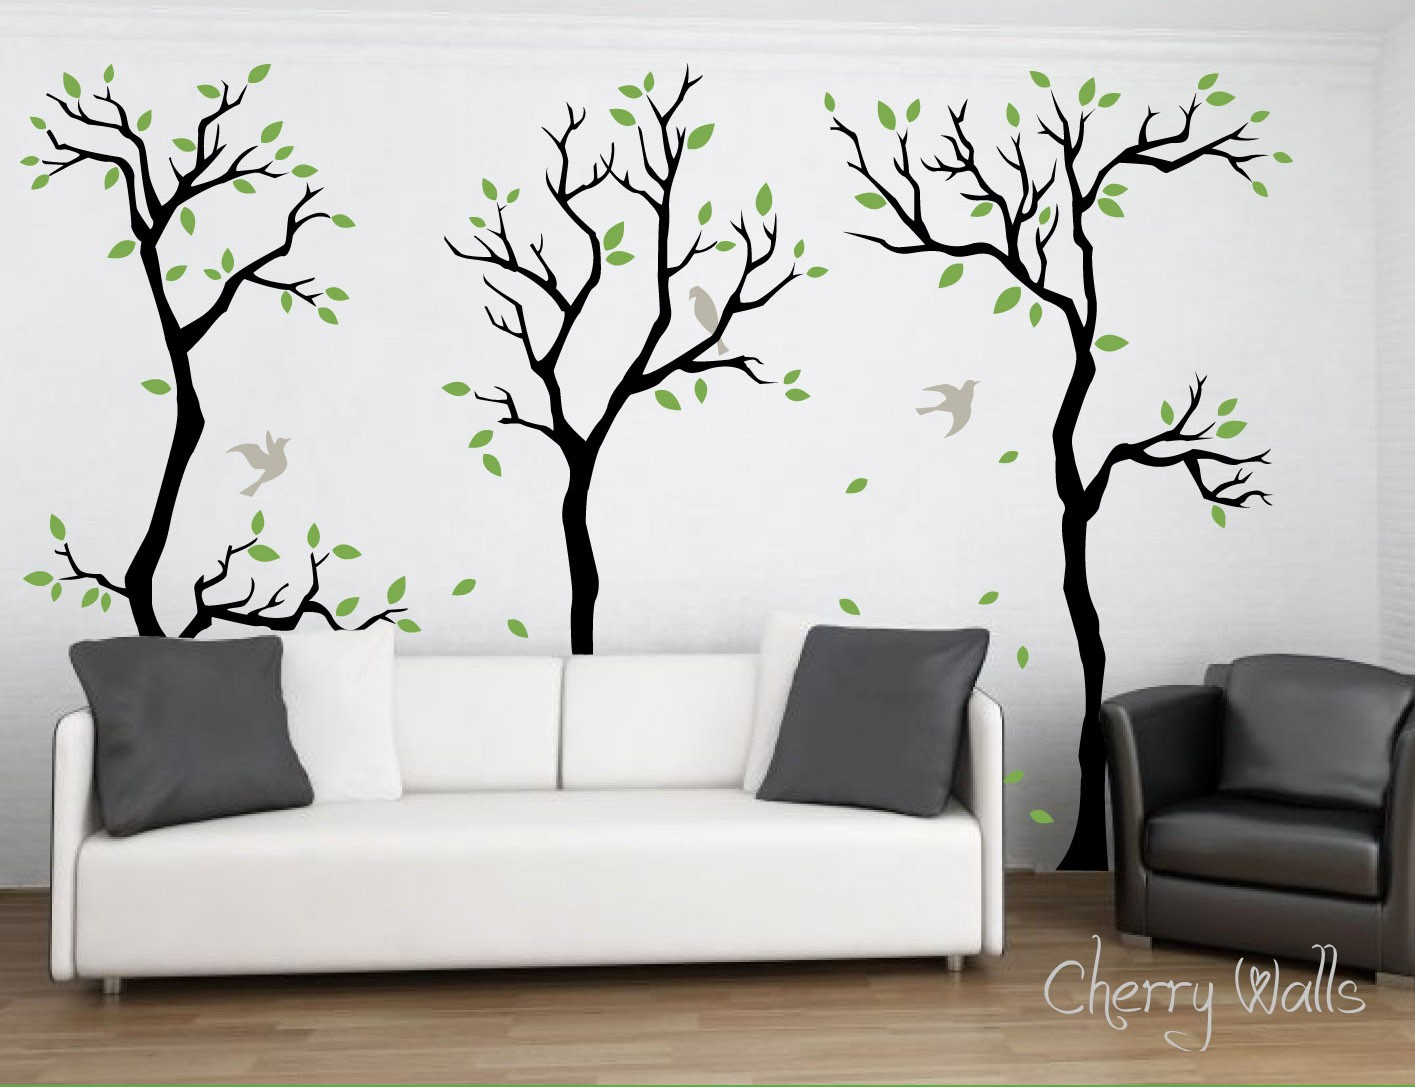 forest-wall-decal-wall-decor-removable-matte-vinyl-wall-stickers-3